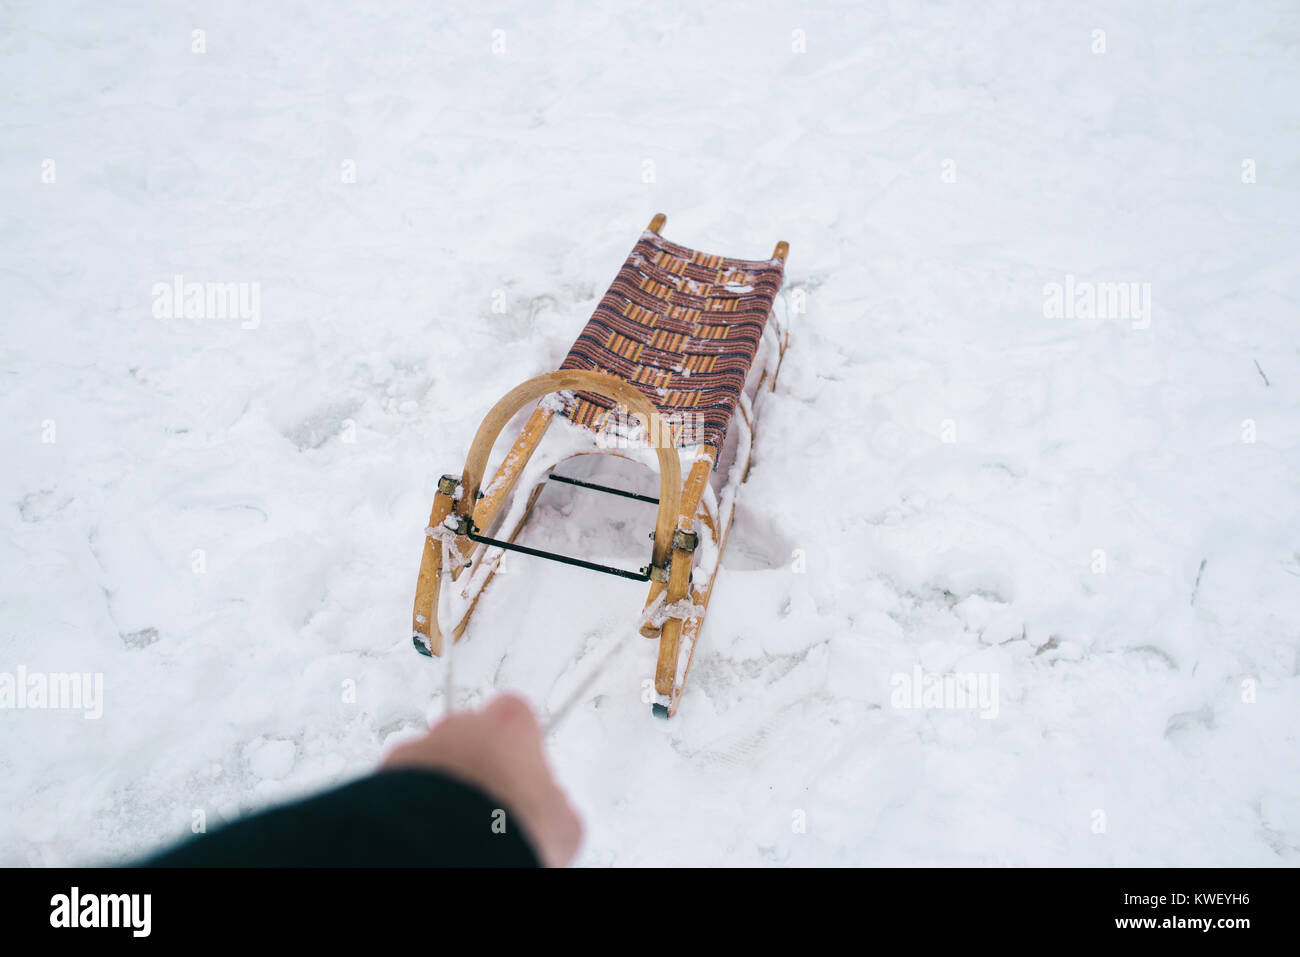 Detail of hand pulling sled. First person view. - Stock Image